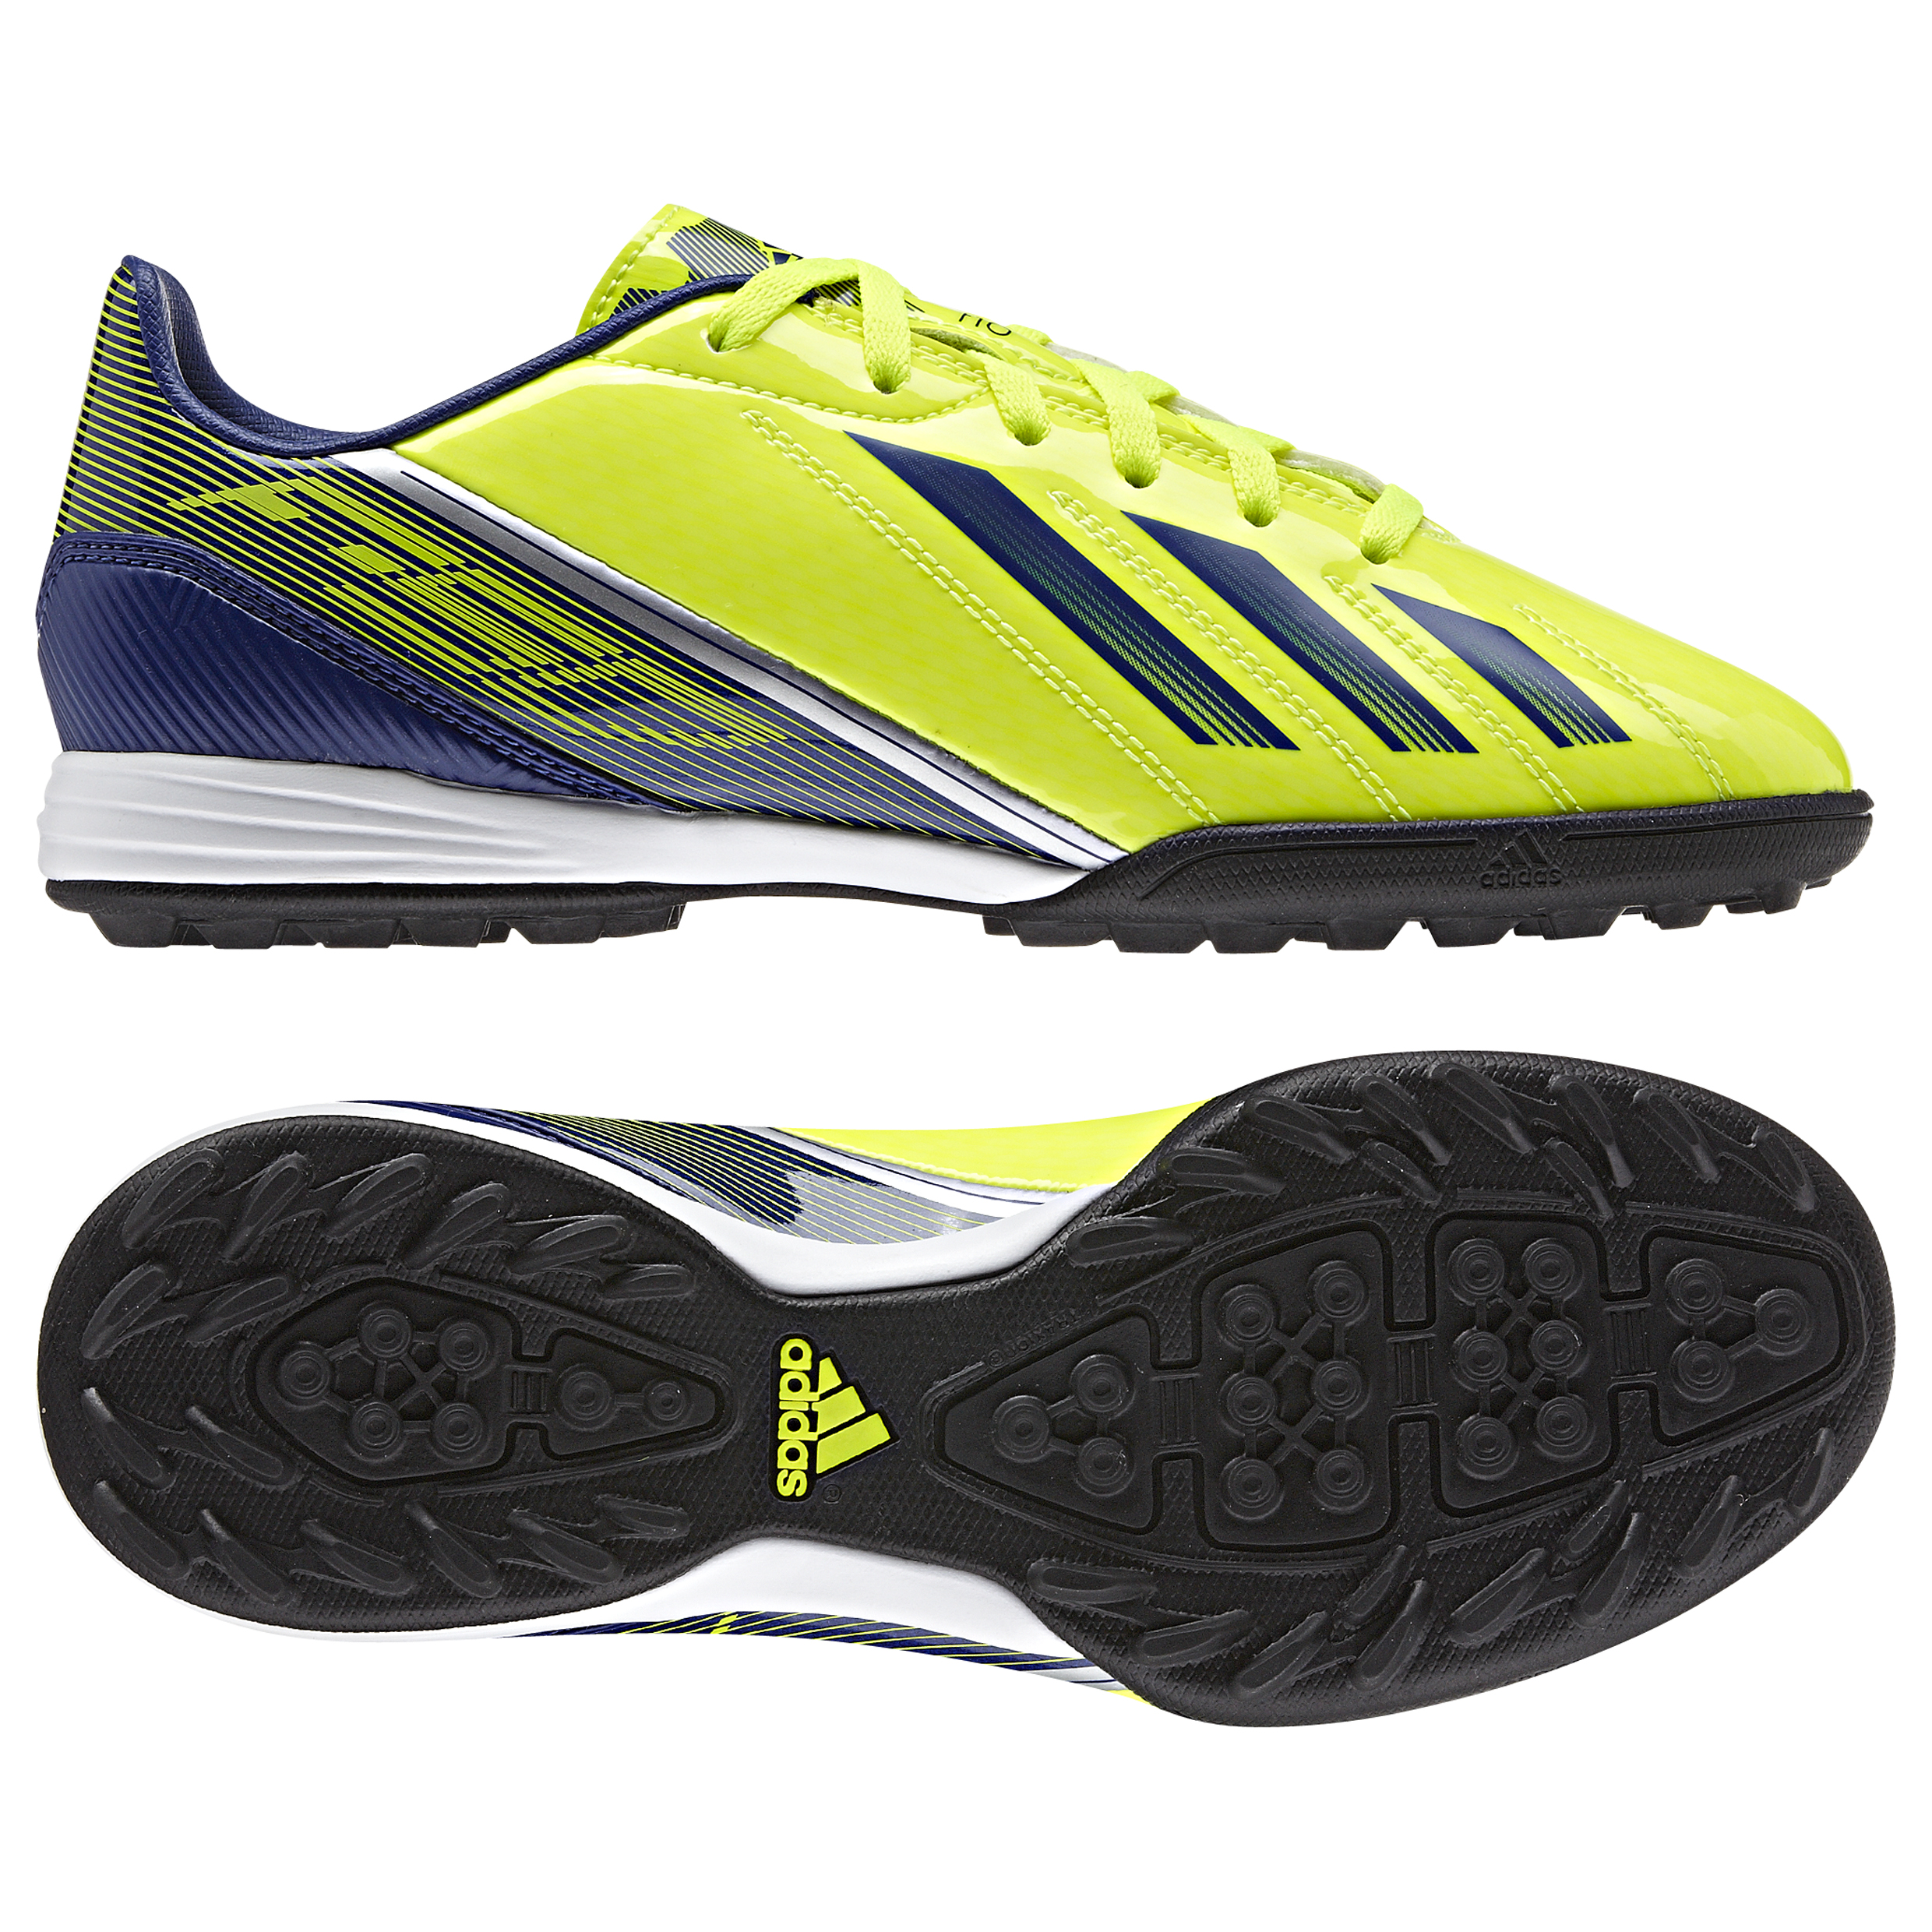 Adidas F10 TRX Astroturf Trainers Yellow